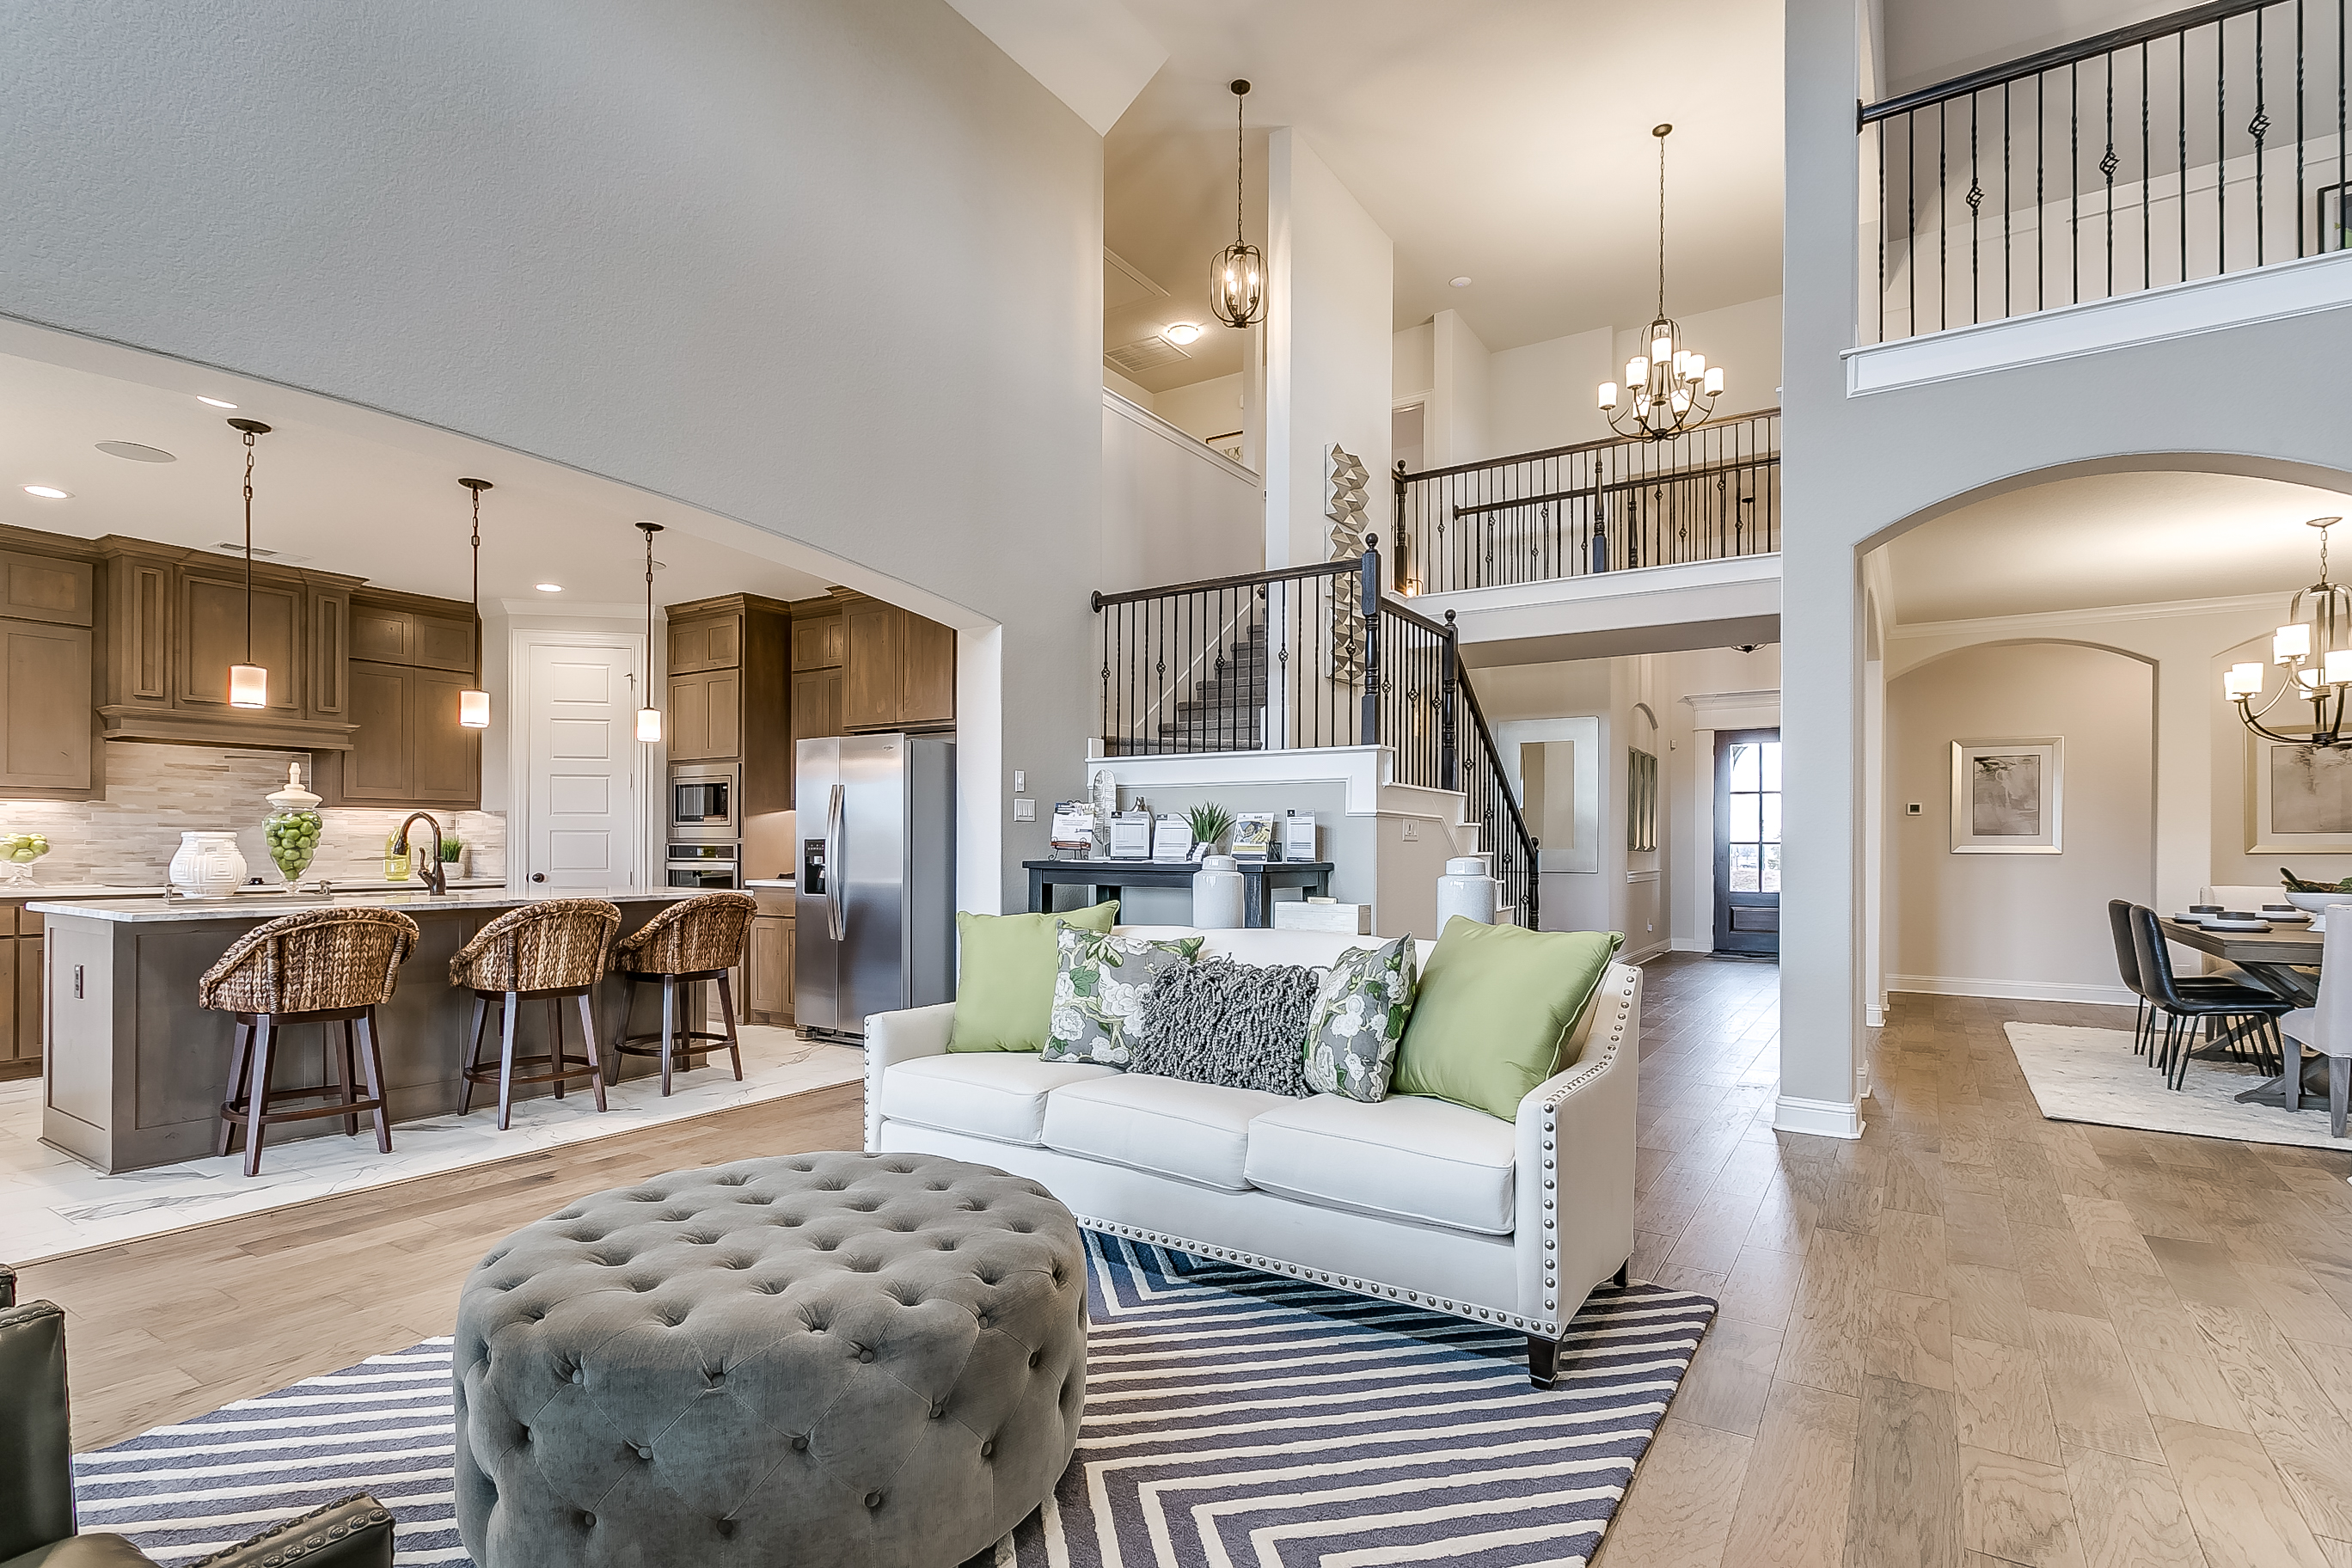 Estates at North Grove, Waxahachie, new homes for sale, waxahachie home builder, ellis county, model home, 3d gallery, 3d home tour, model home photos, open living loft